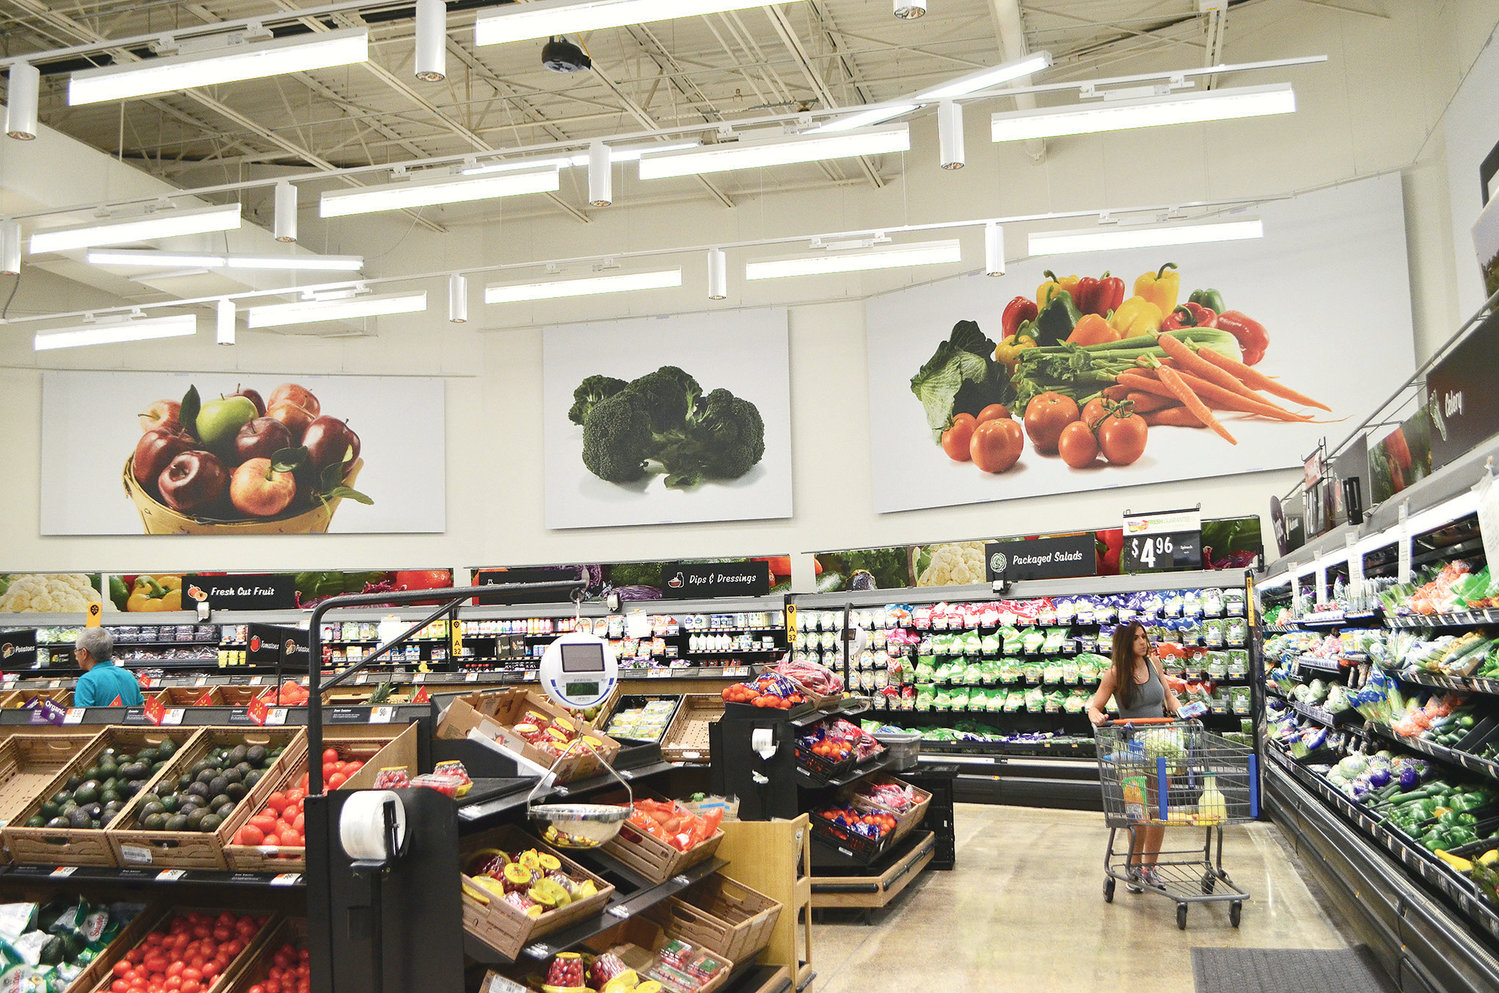 New LED Lights Installed In The Produce Section At Walmart Will Help Fruits And Vegetables Last